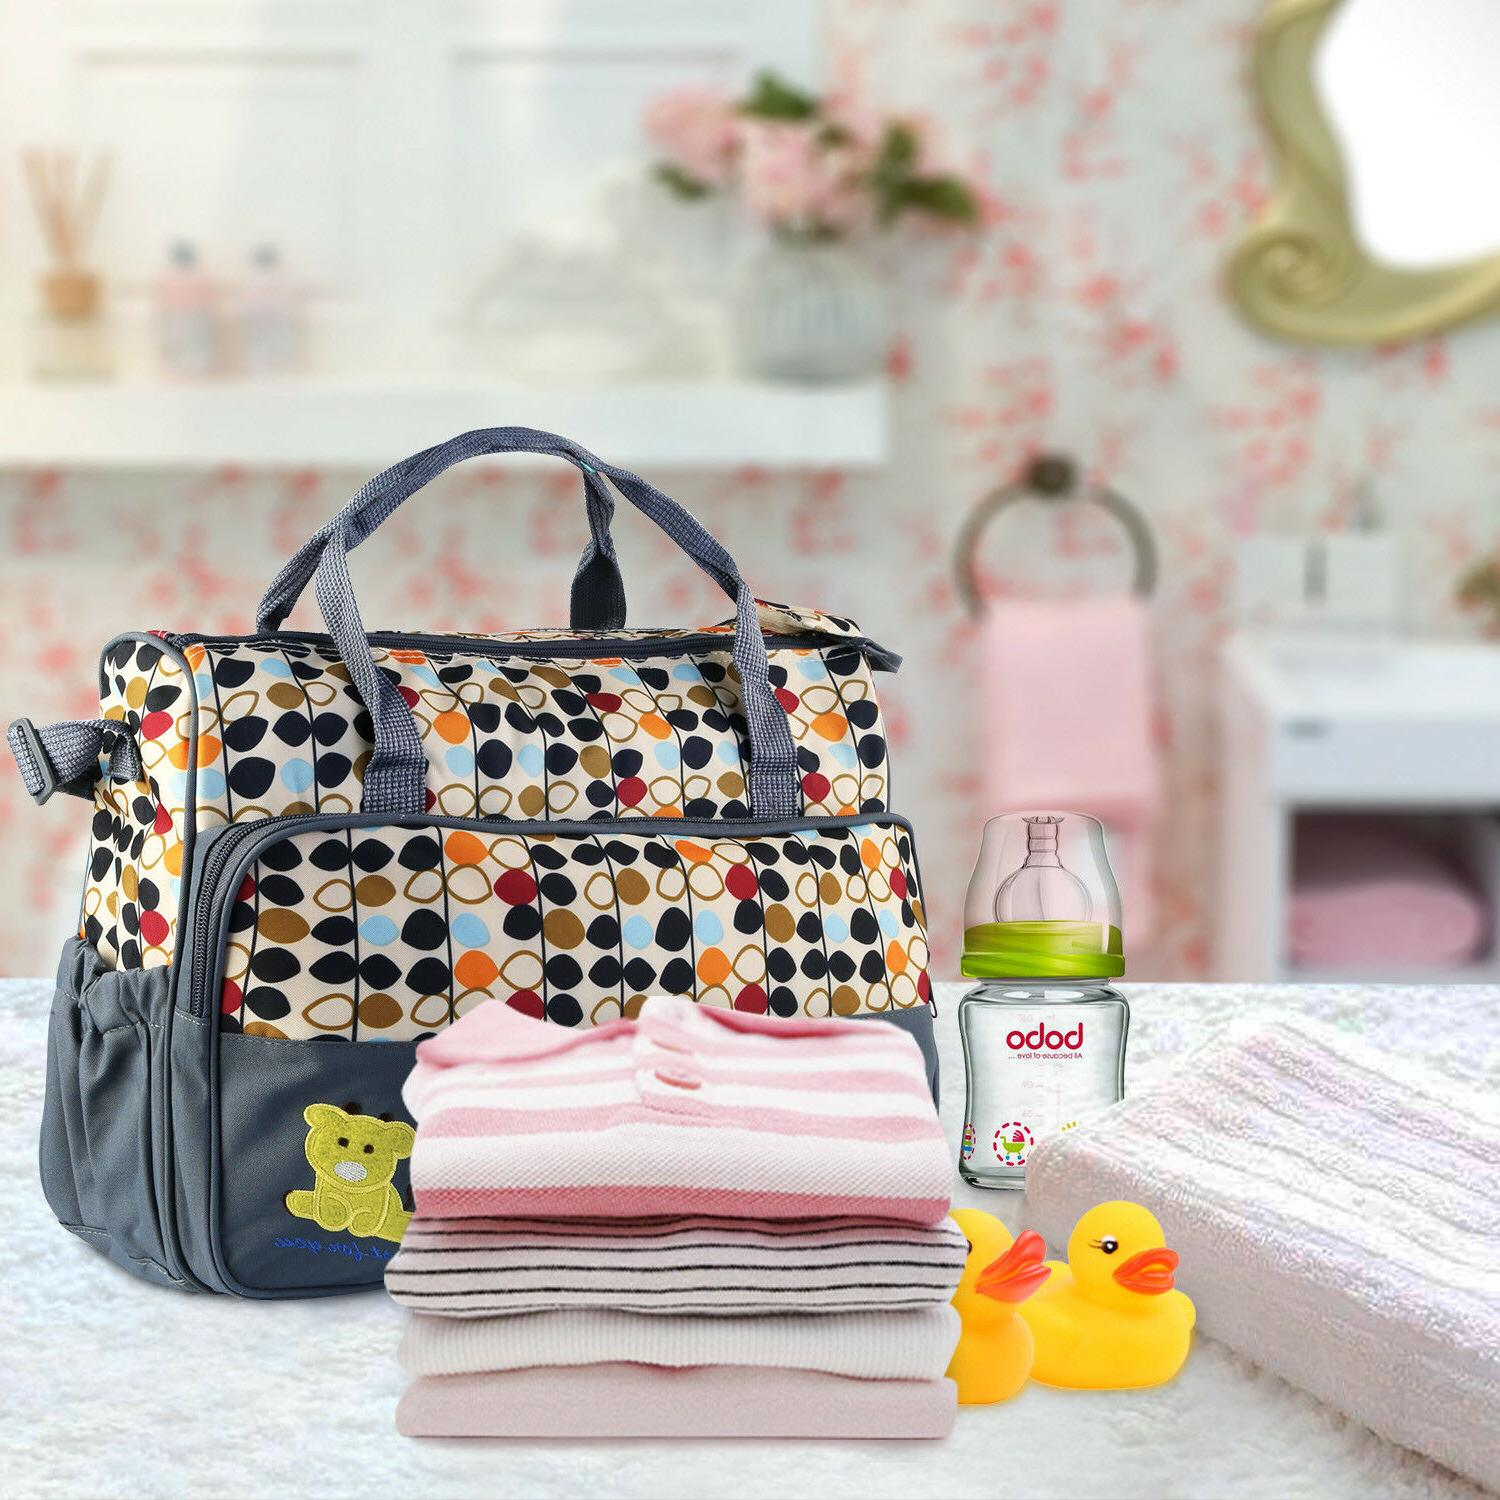 Baby Maternity Tote for Pad